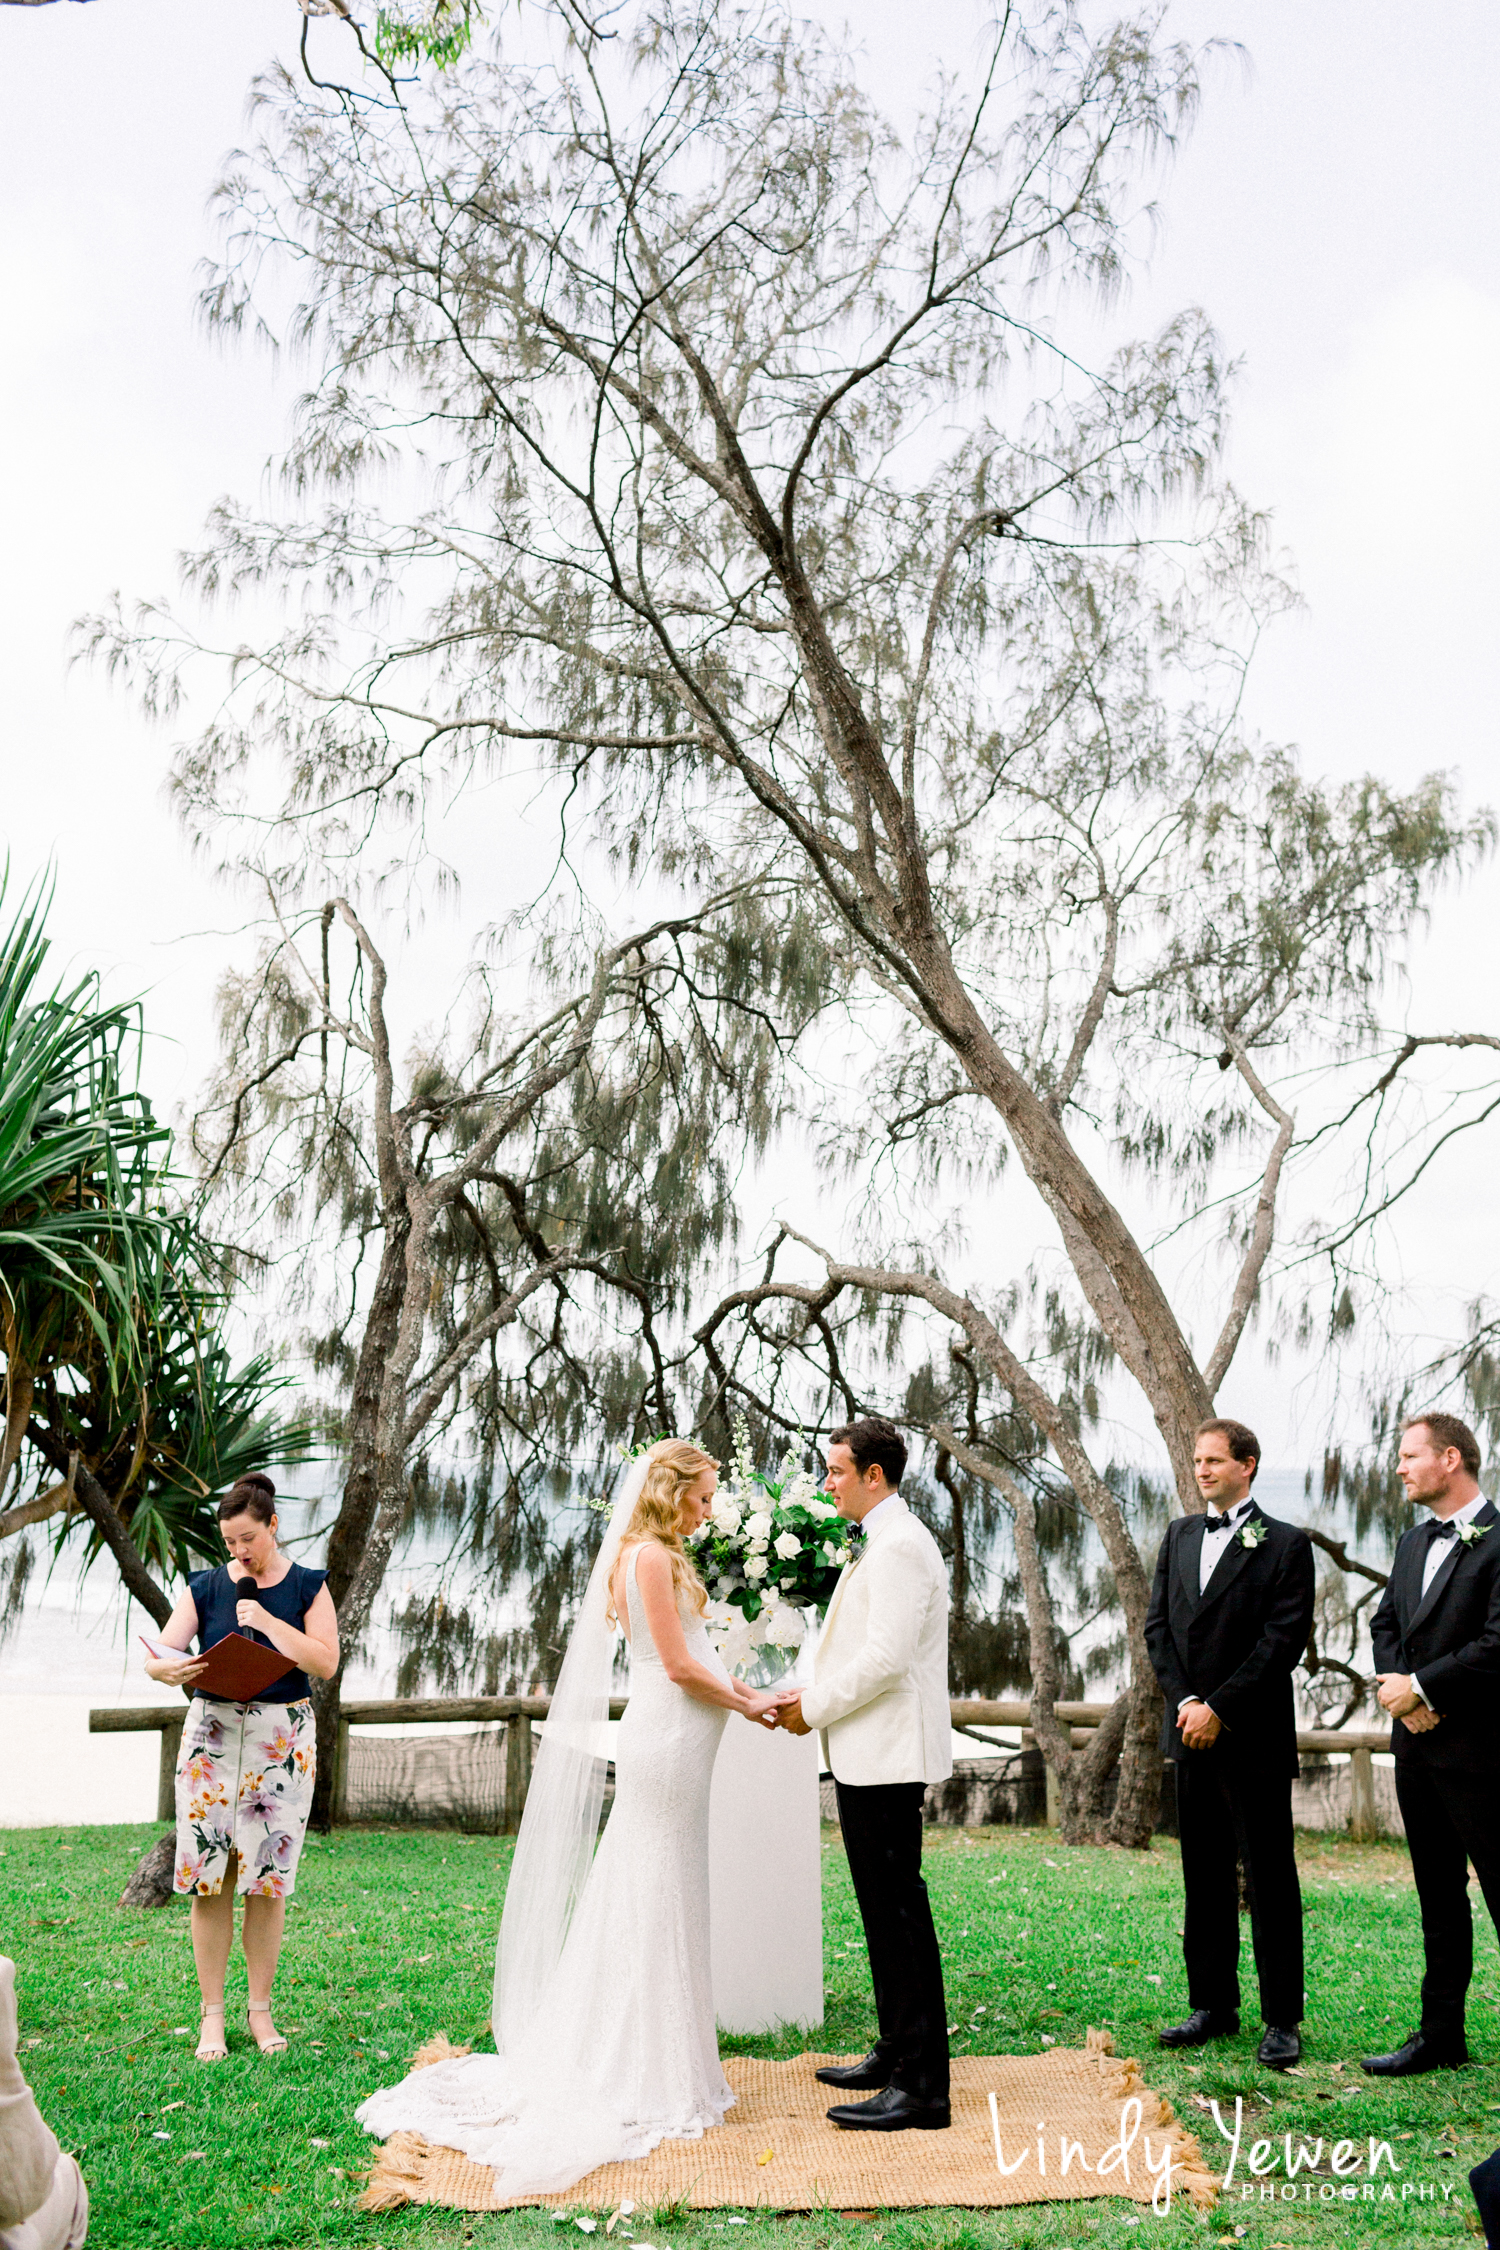 Noosa-Weddings-Amelia-Michael 103.jpg